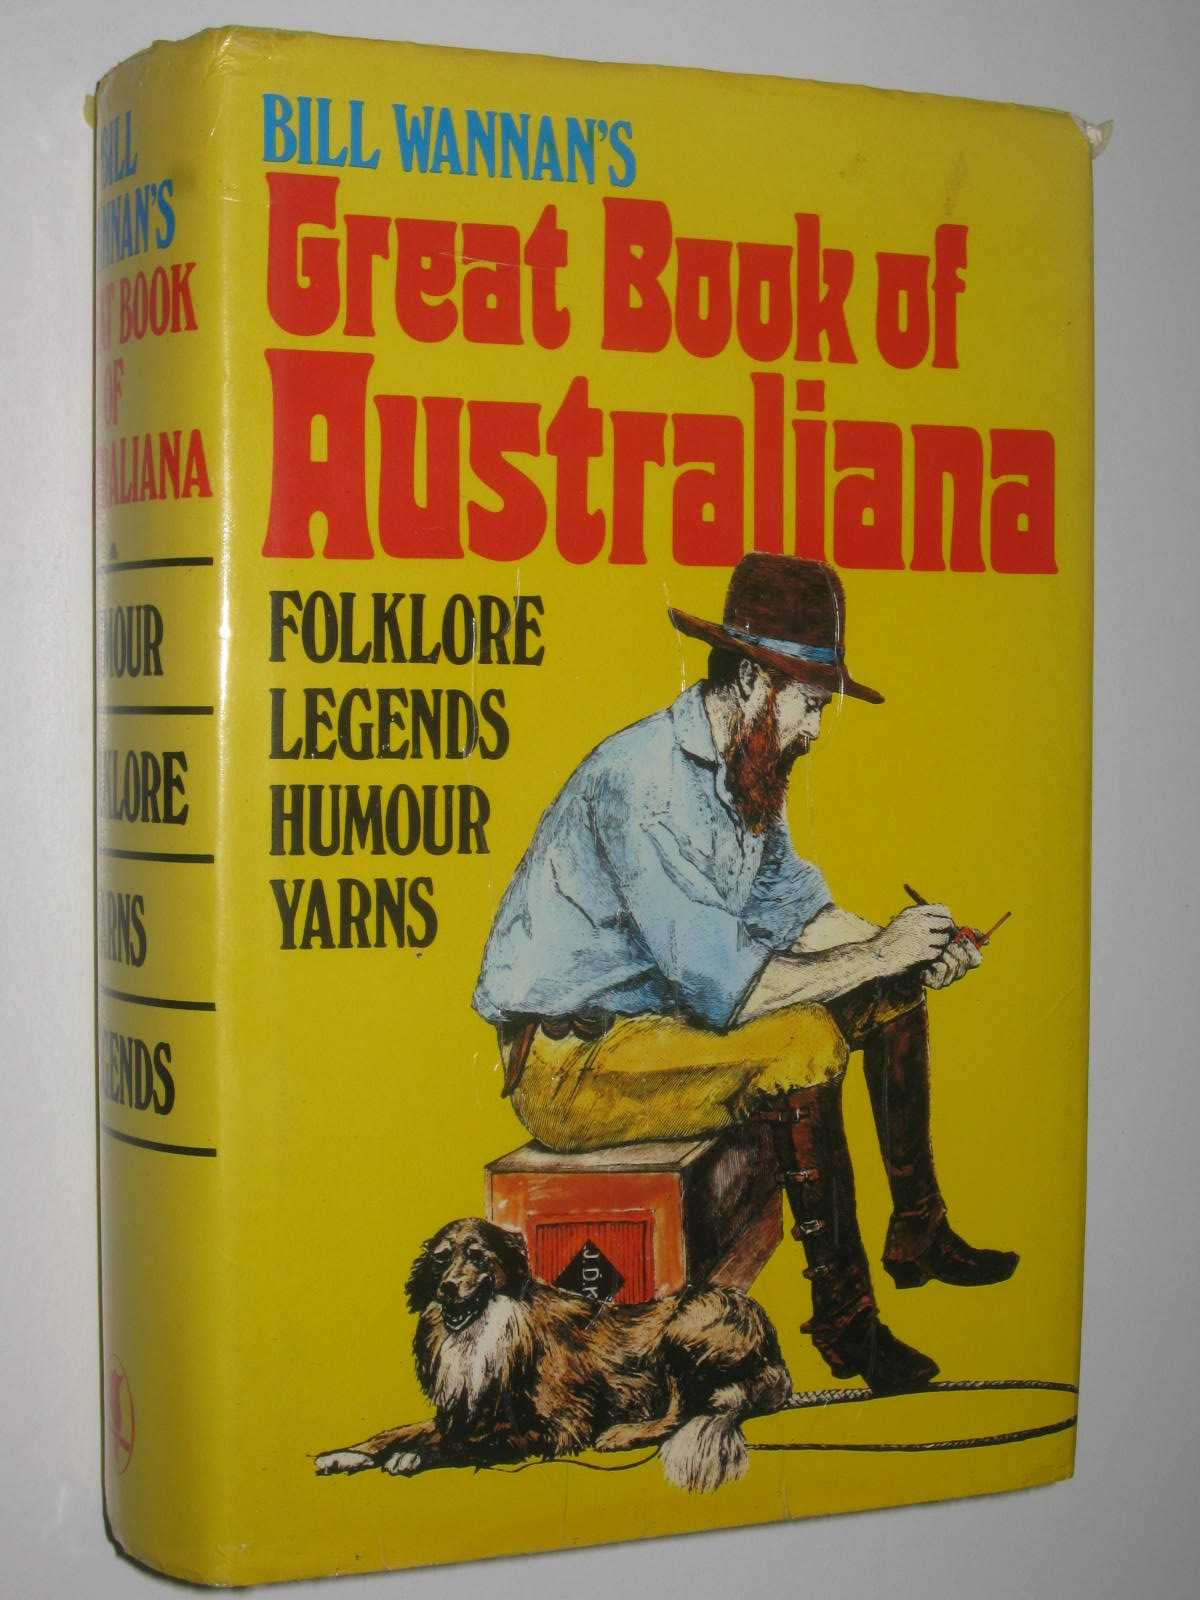 Image for Great Book Of Australiana : Humour Folklore Yarns Legends